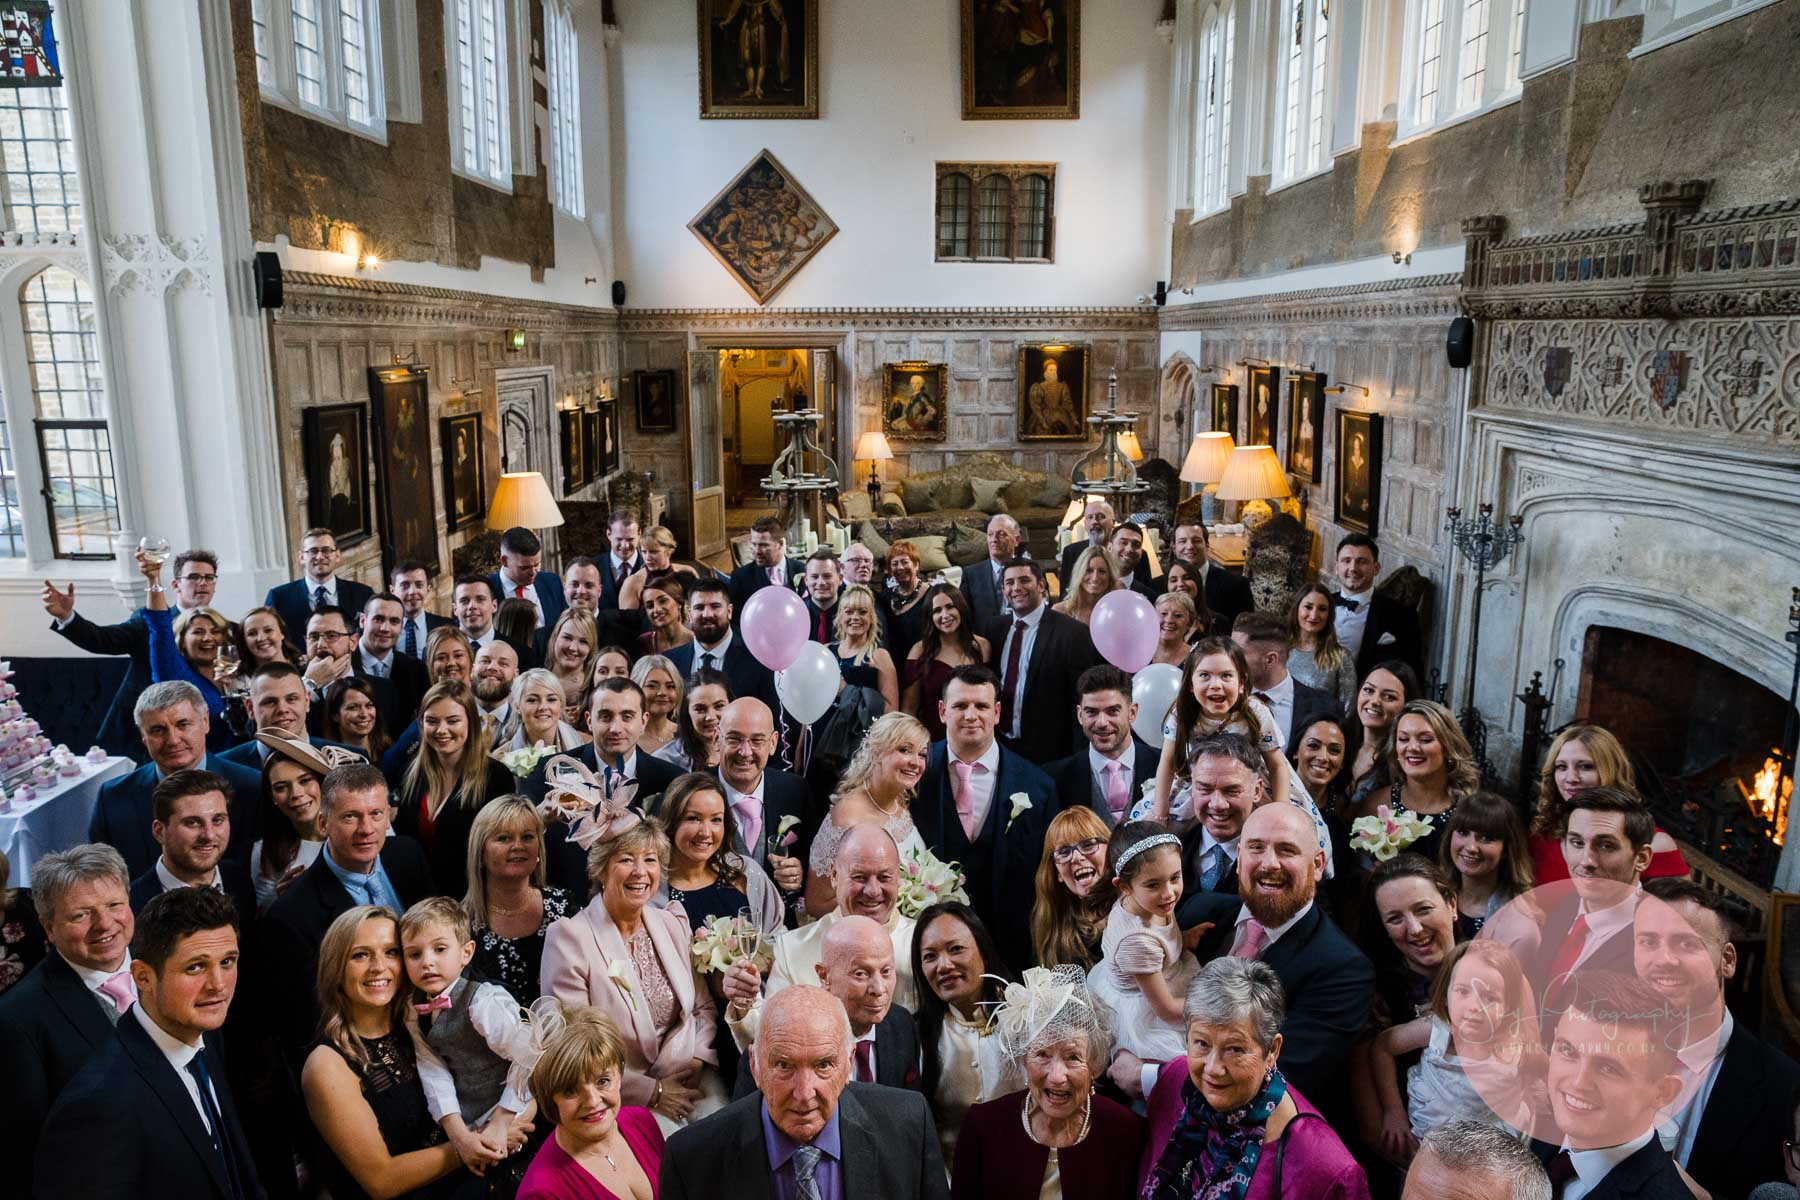 Guests in the great hall at Fawsley Hall